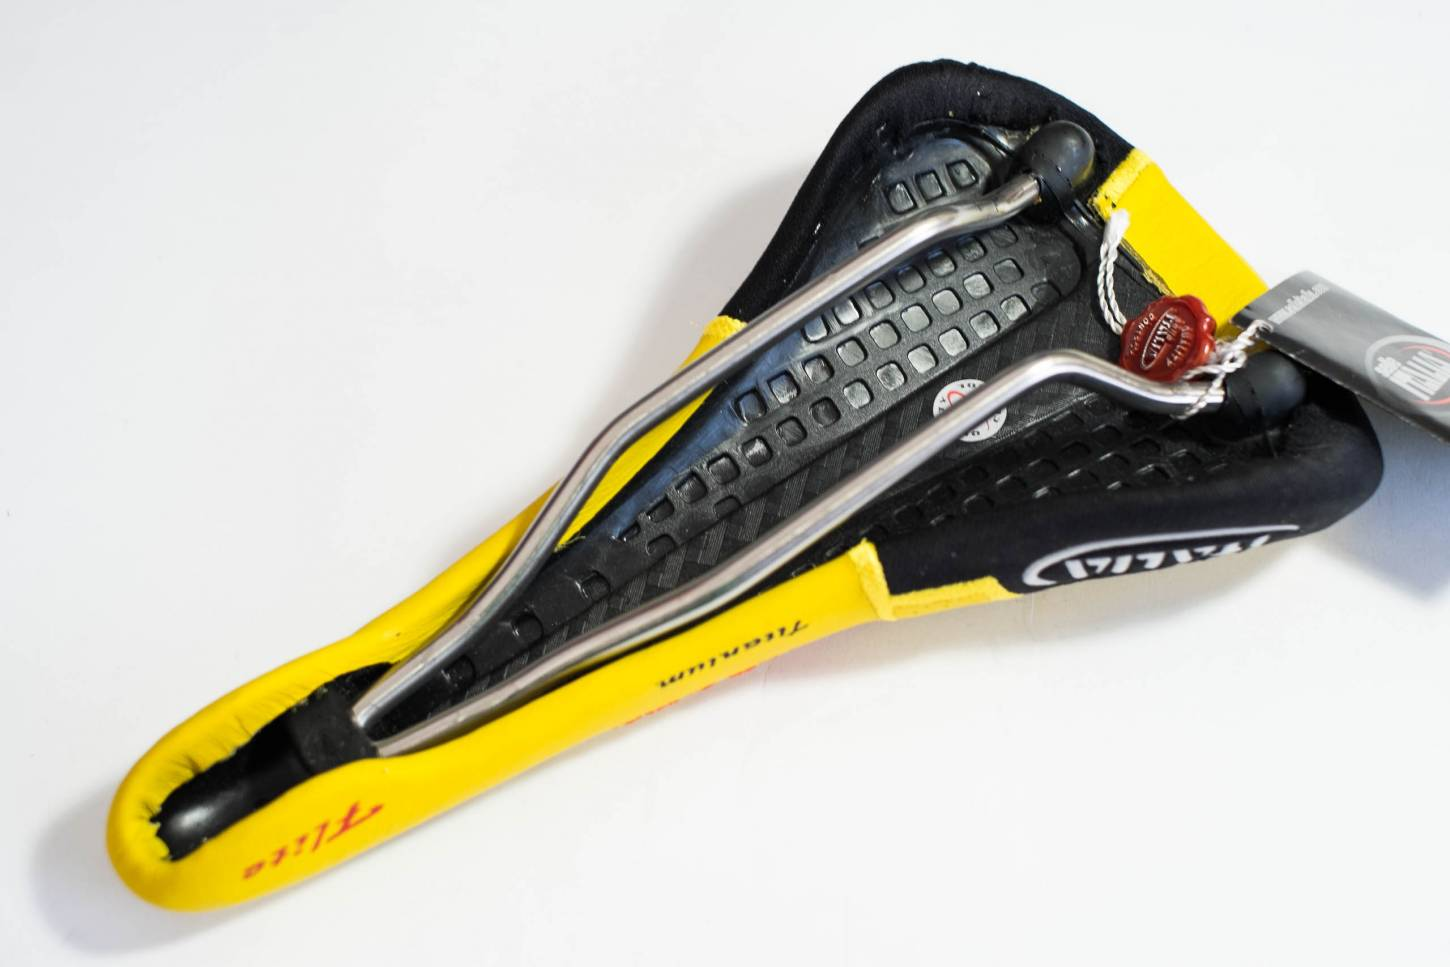 NOS Selle Italia Flite Titanium Sattel yellow / black Double Gel Saddle leather Vintage Road Bike